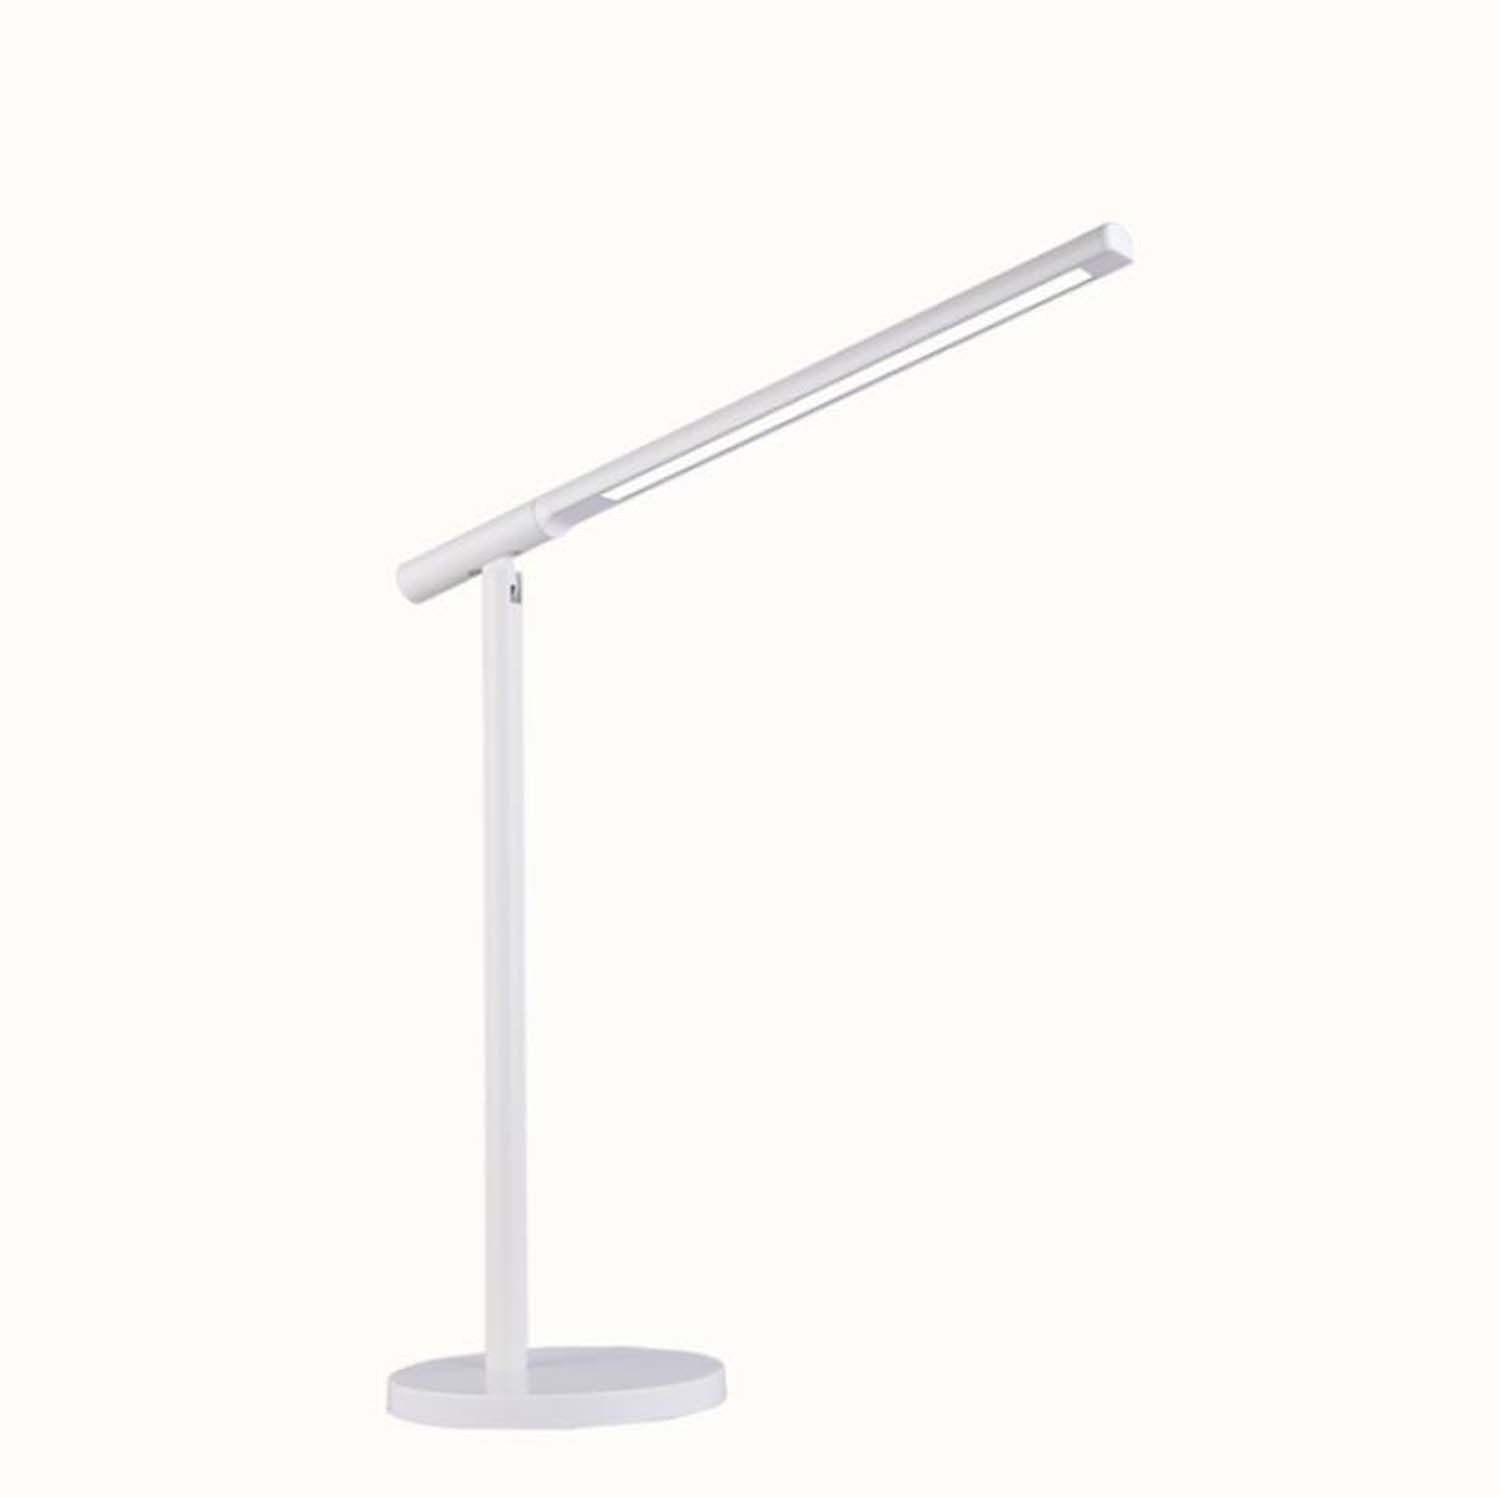 LED Desk Lamp 3 Mode X 5 Level Dimmable Desk Lamp 8W Eye Care Adjustable Light Touch Sensing Control Gooseneck Lamp Office, Family, Reading, Learning, Work